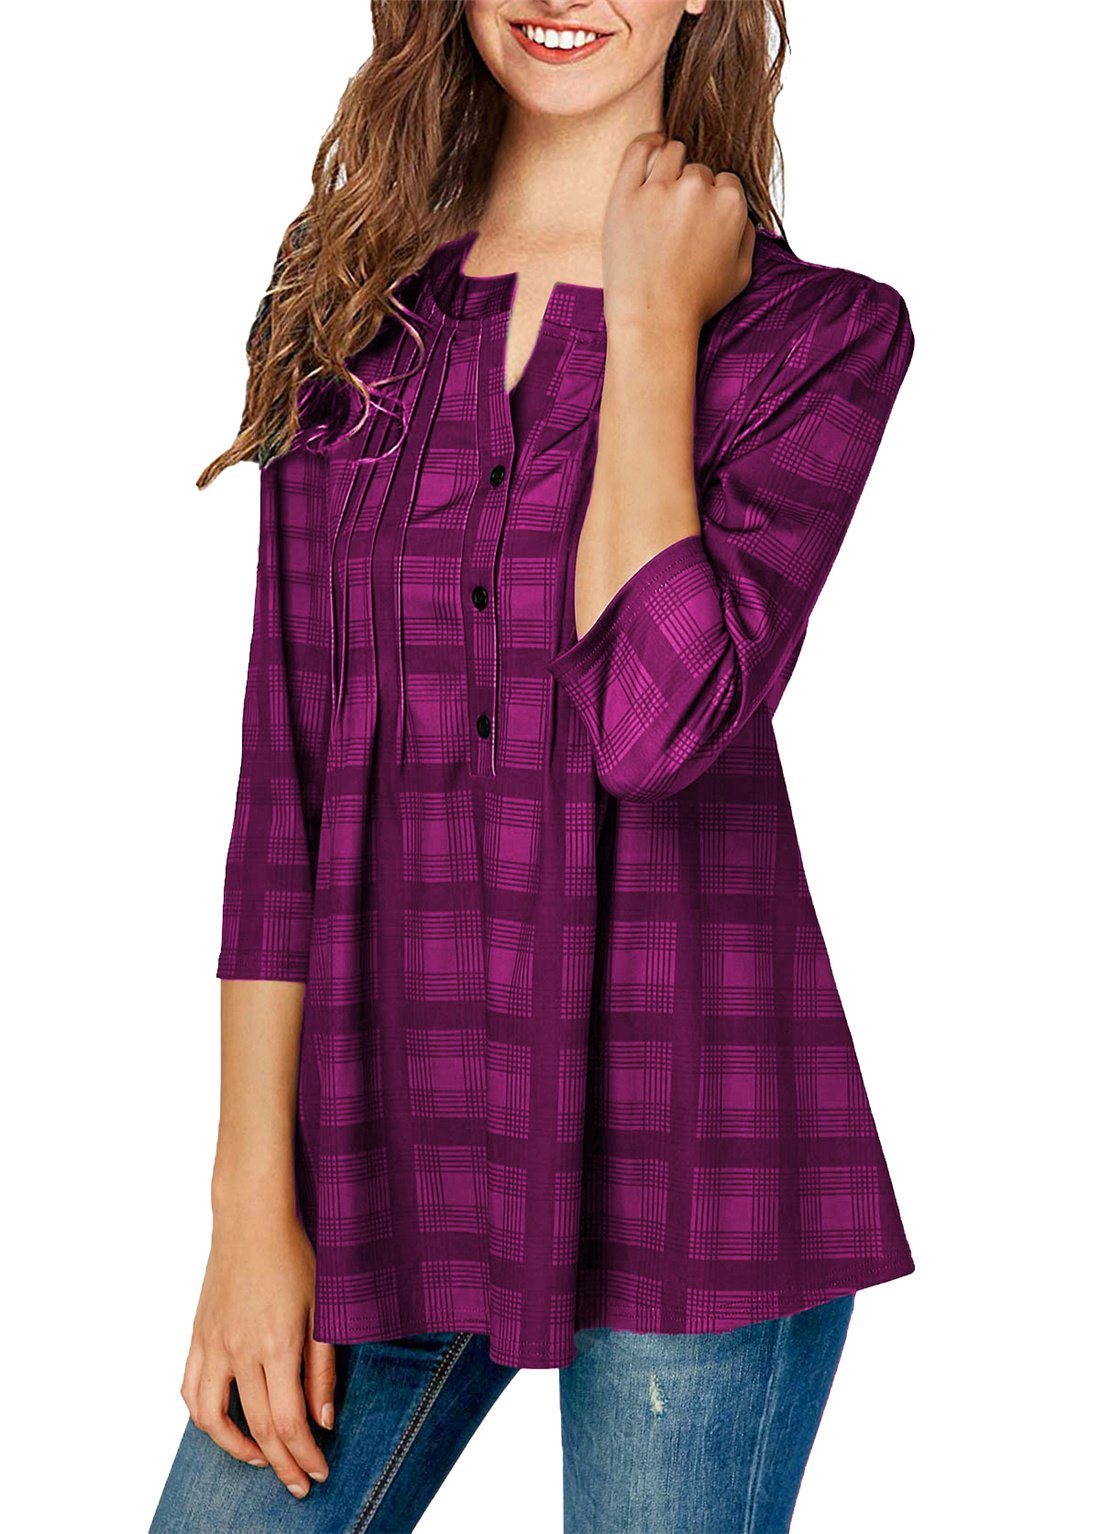 ONLYSHE Women's Long Sleeves Button Down Plaid Shirts Crew Neck Blouses Casual Style Purple X-Large